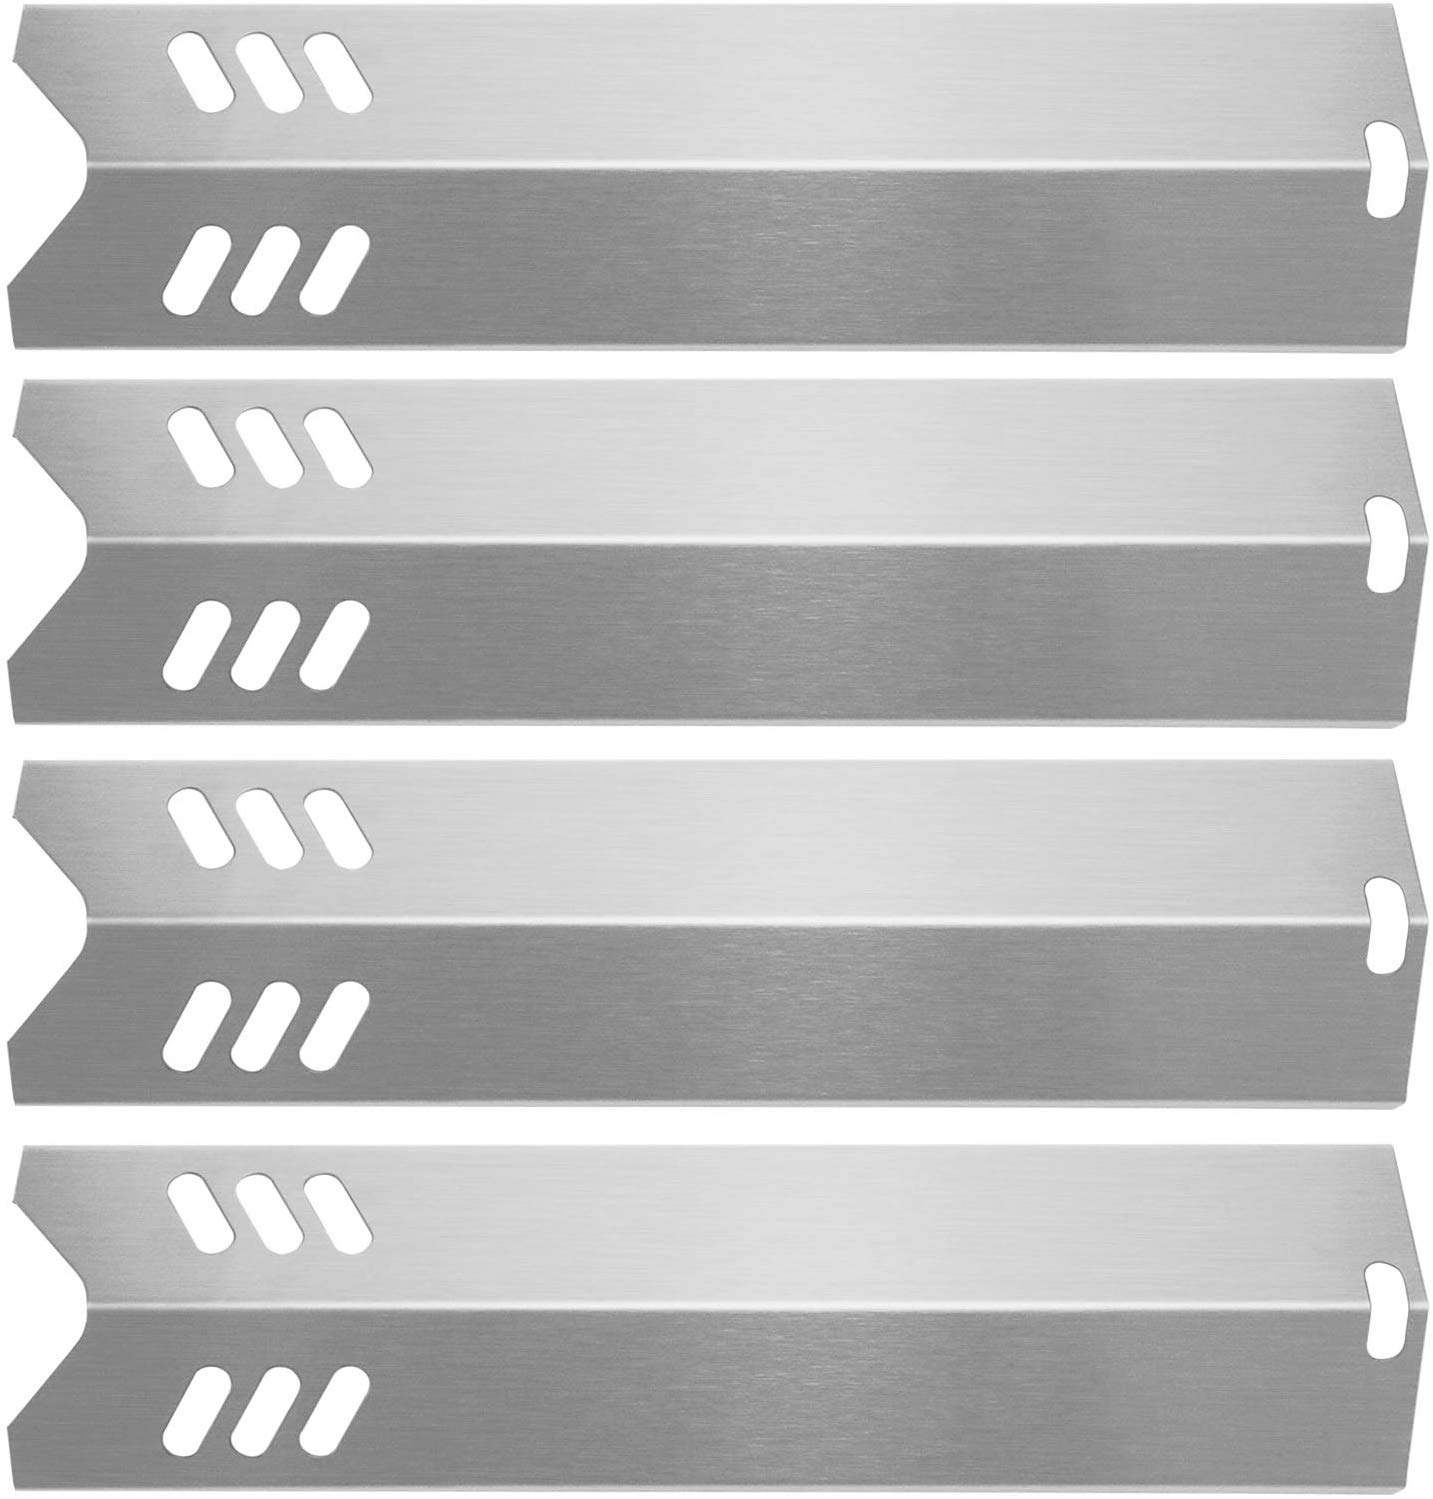 15 inch Heat Plate Replacement for Dyna-glo DGF510SBP ...